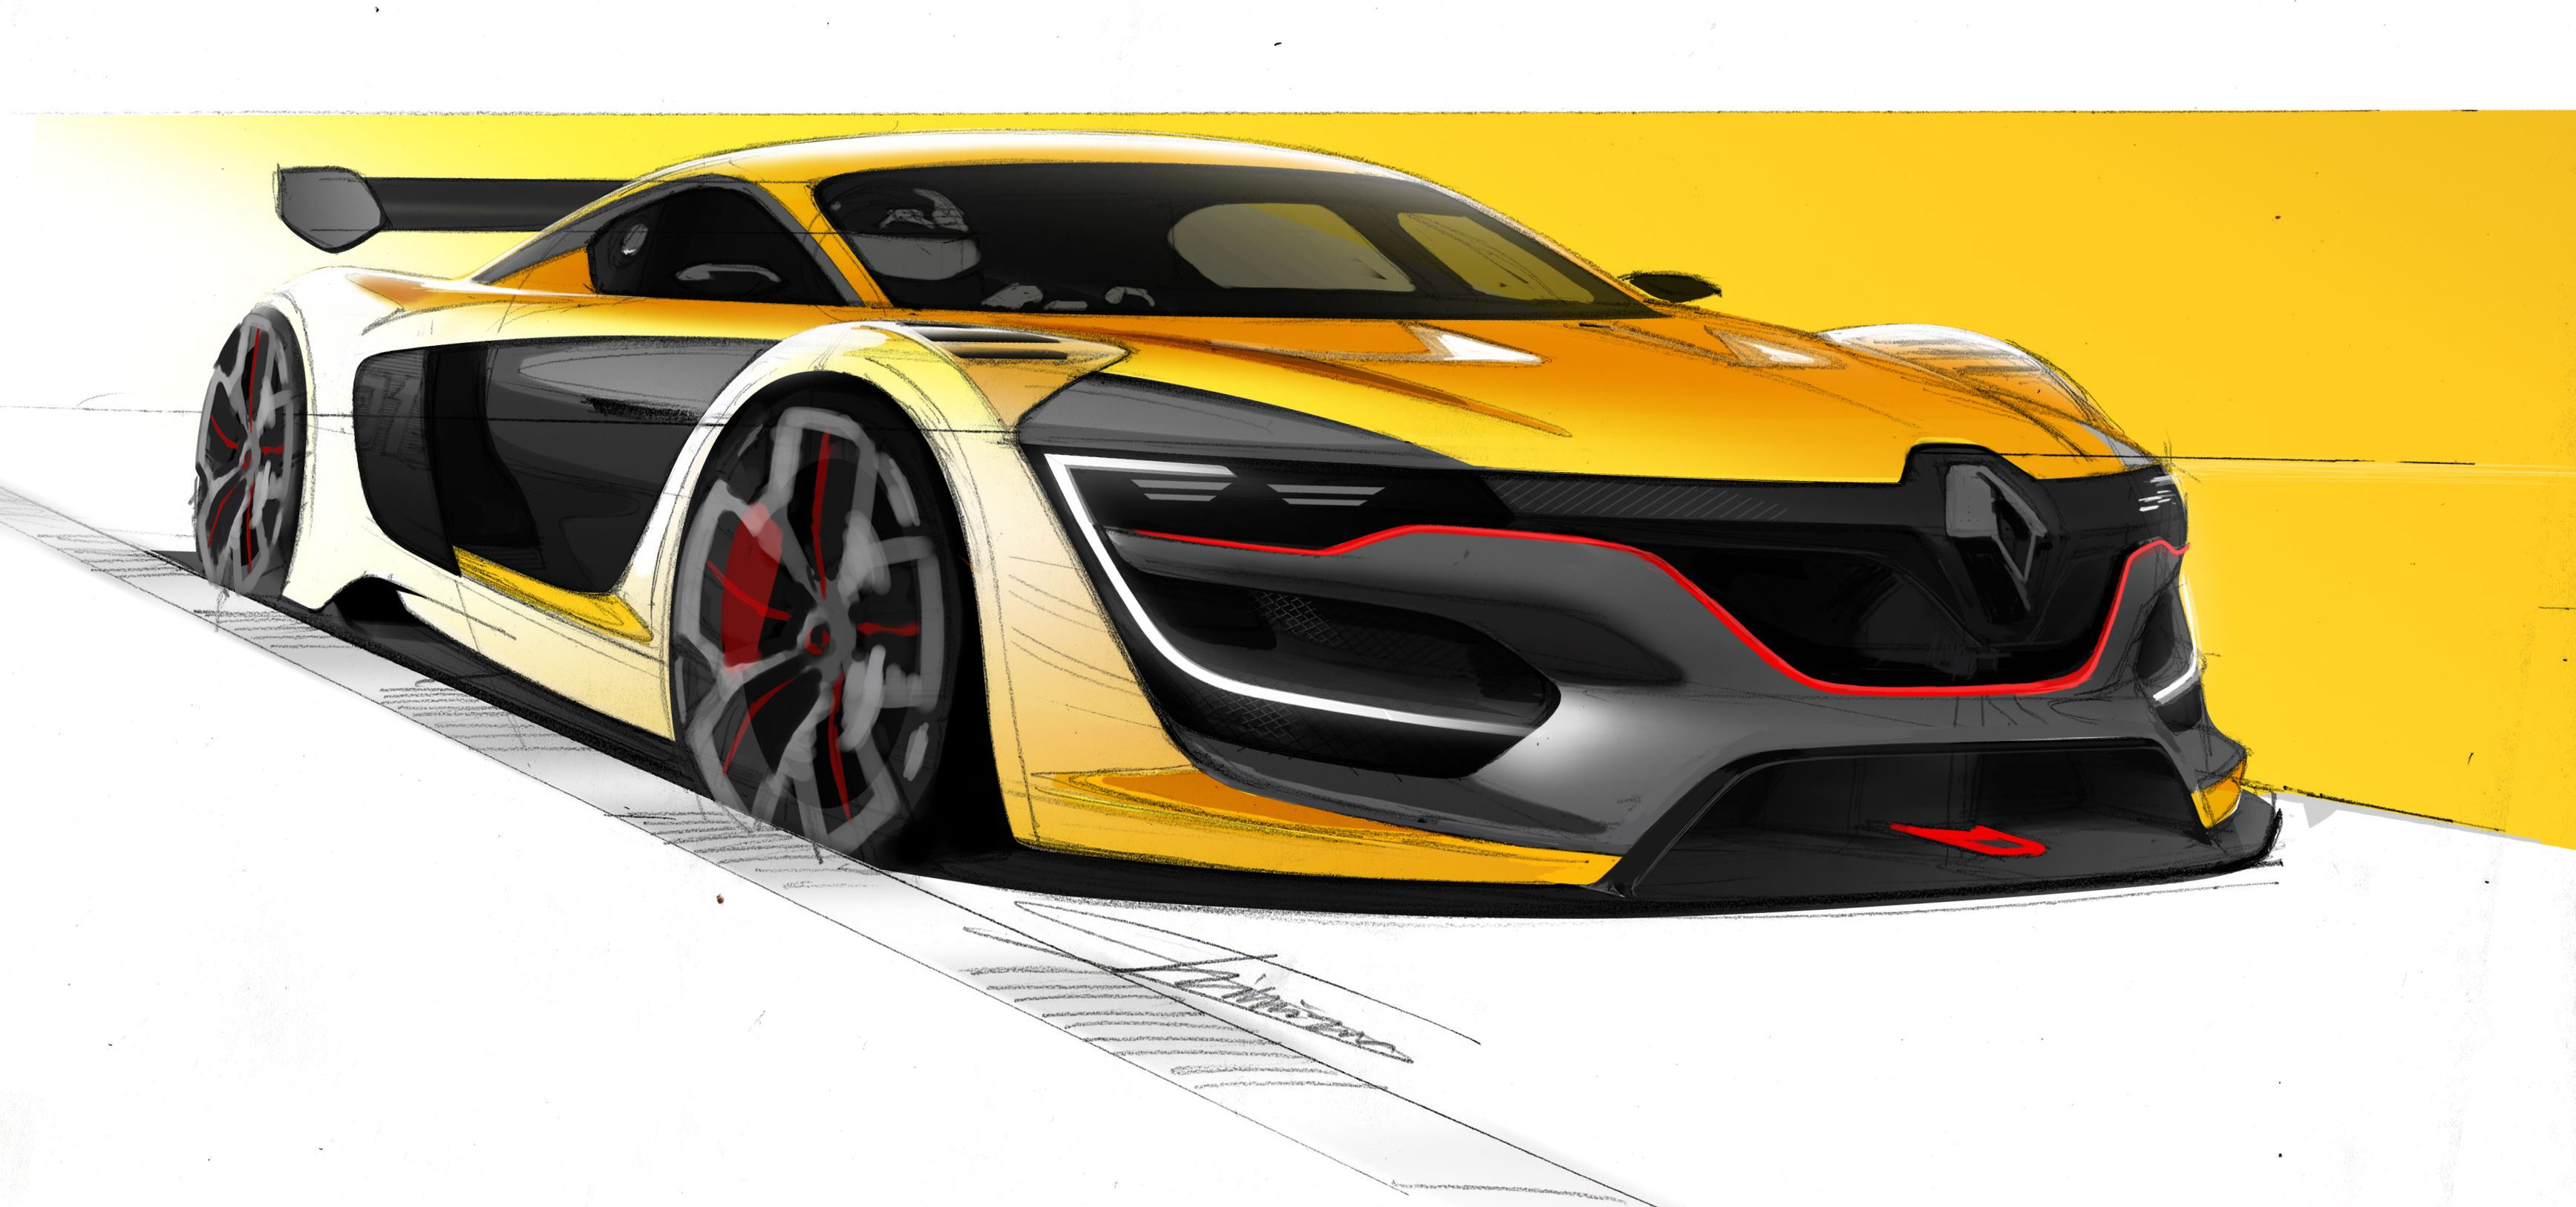 renault sport r s 01 sans compromis sketches car sketch and cars. Black Bedroom Furniture Sets. Home Design Ideas